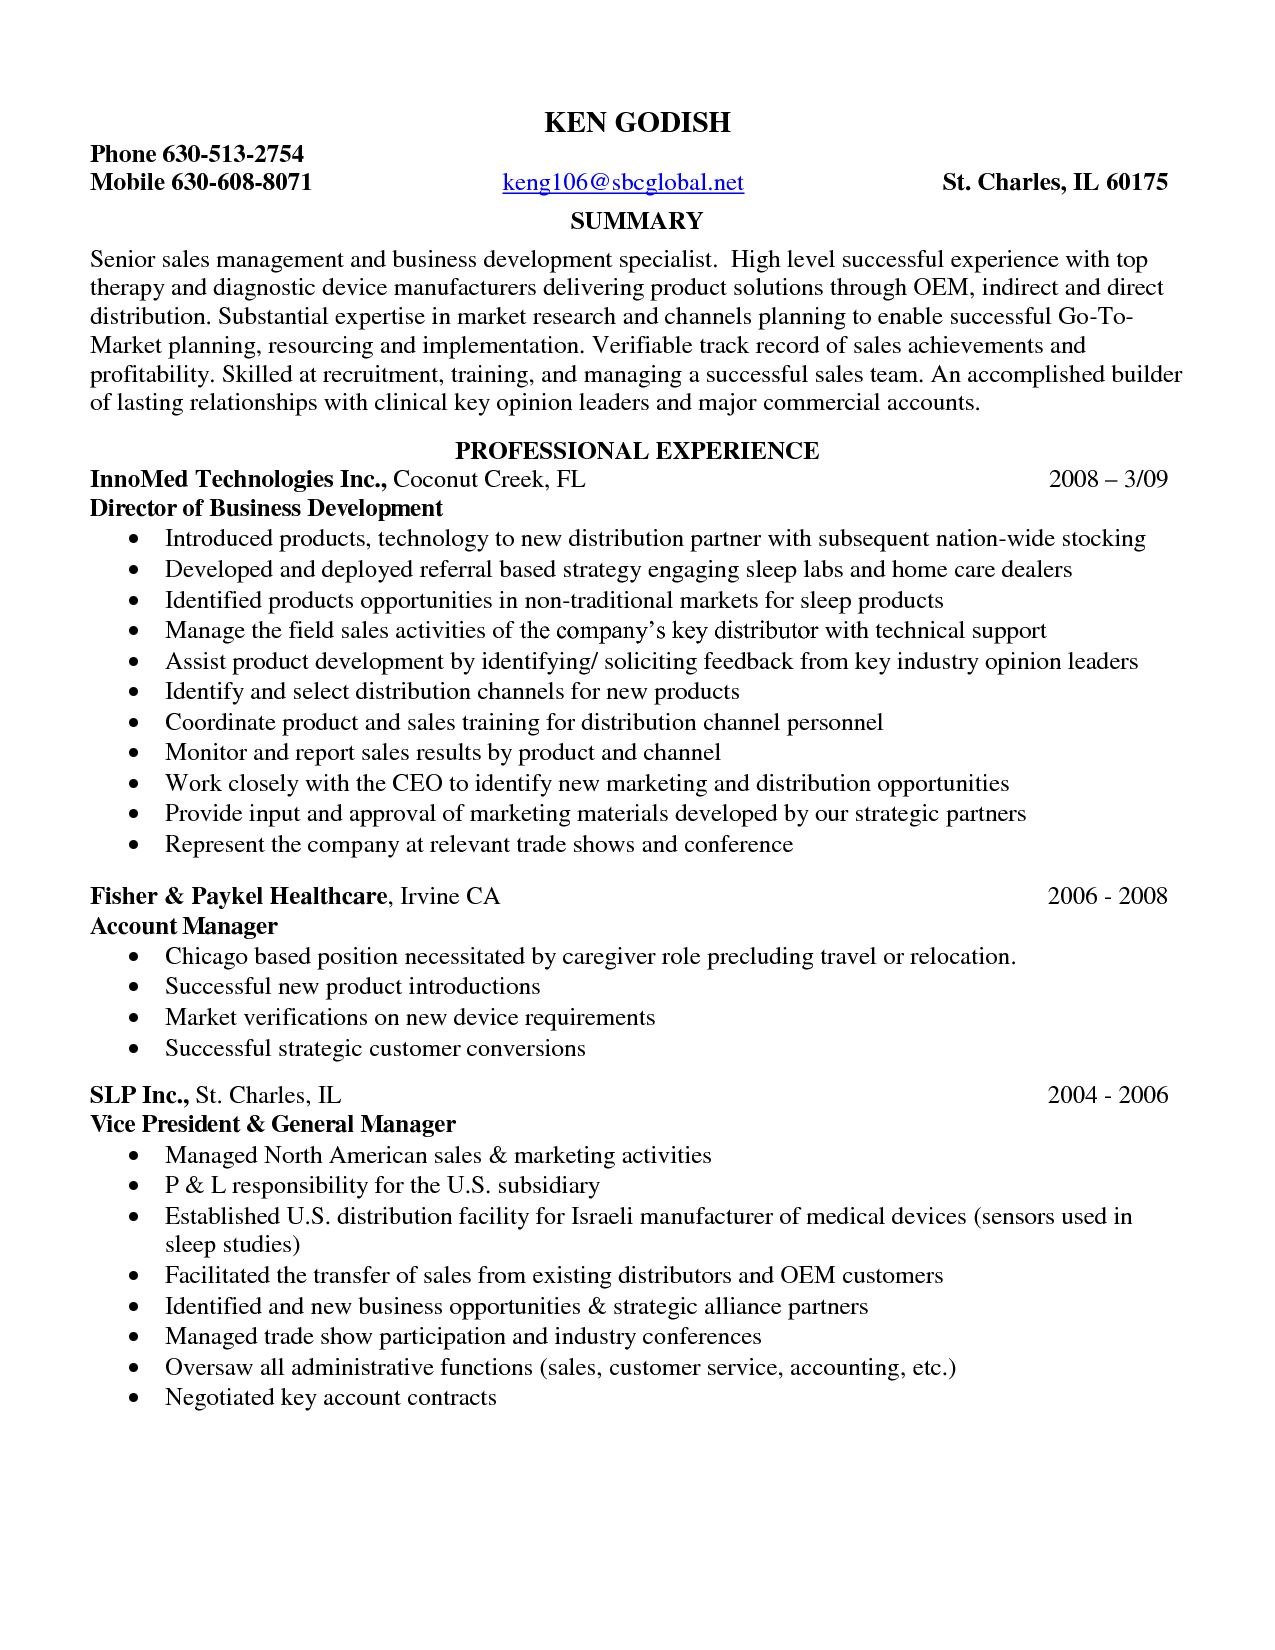 Sales Job Resume Sample Resume Entry Level Pharmaceutical Sales Sample Resume Entry